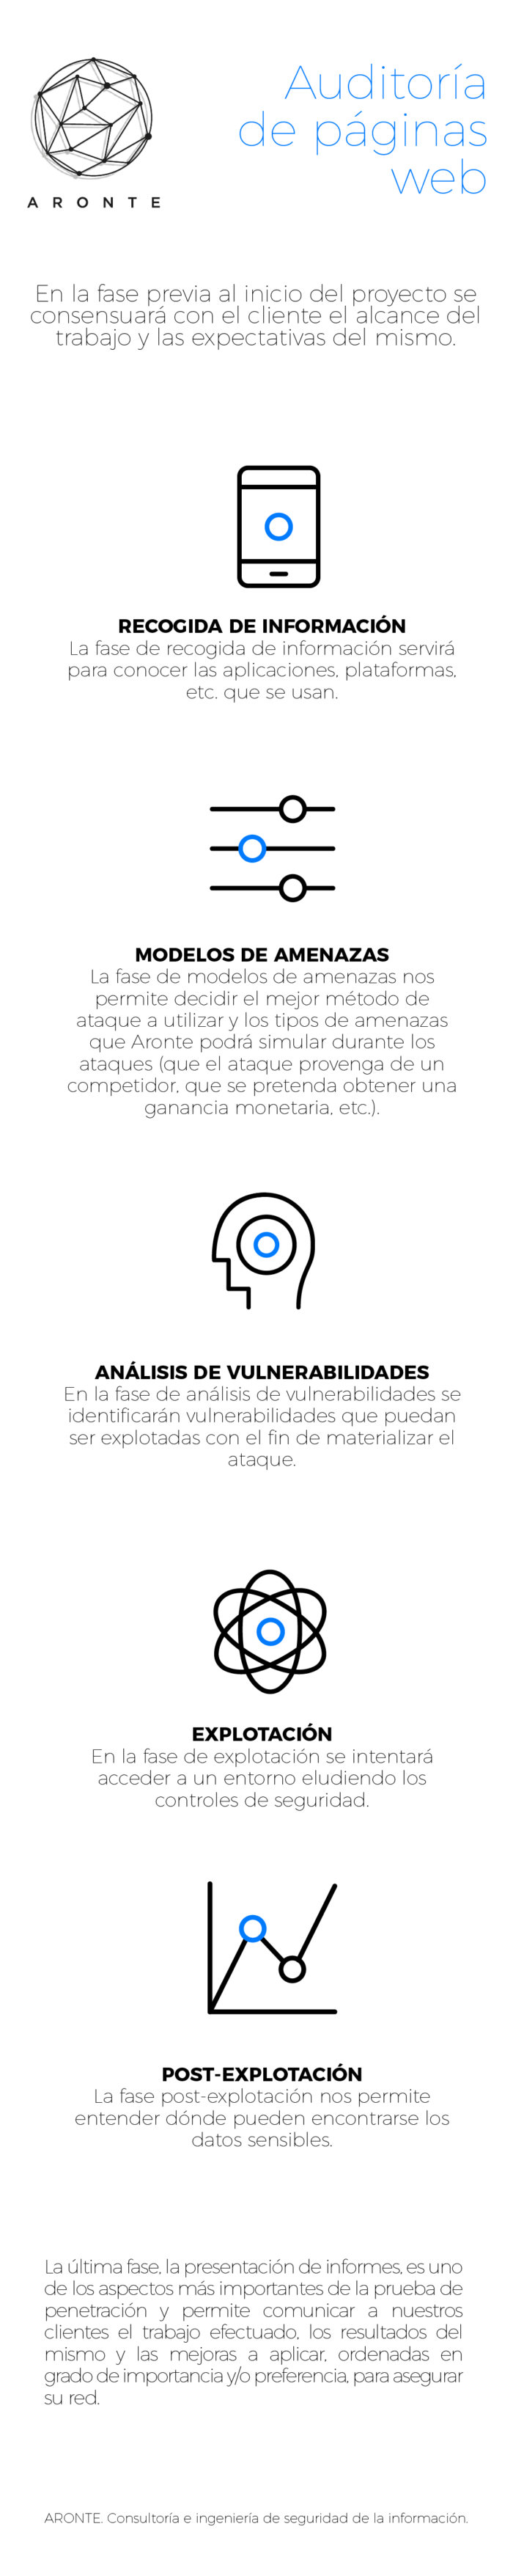 infografia_AUDITORiA_web-01